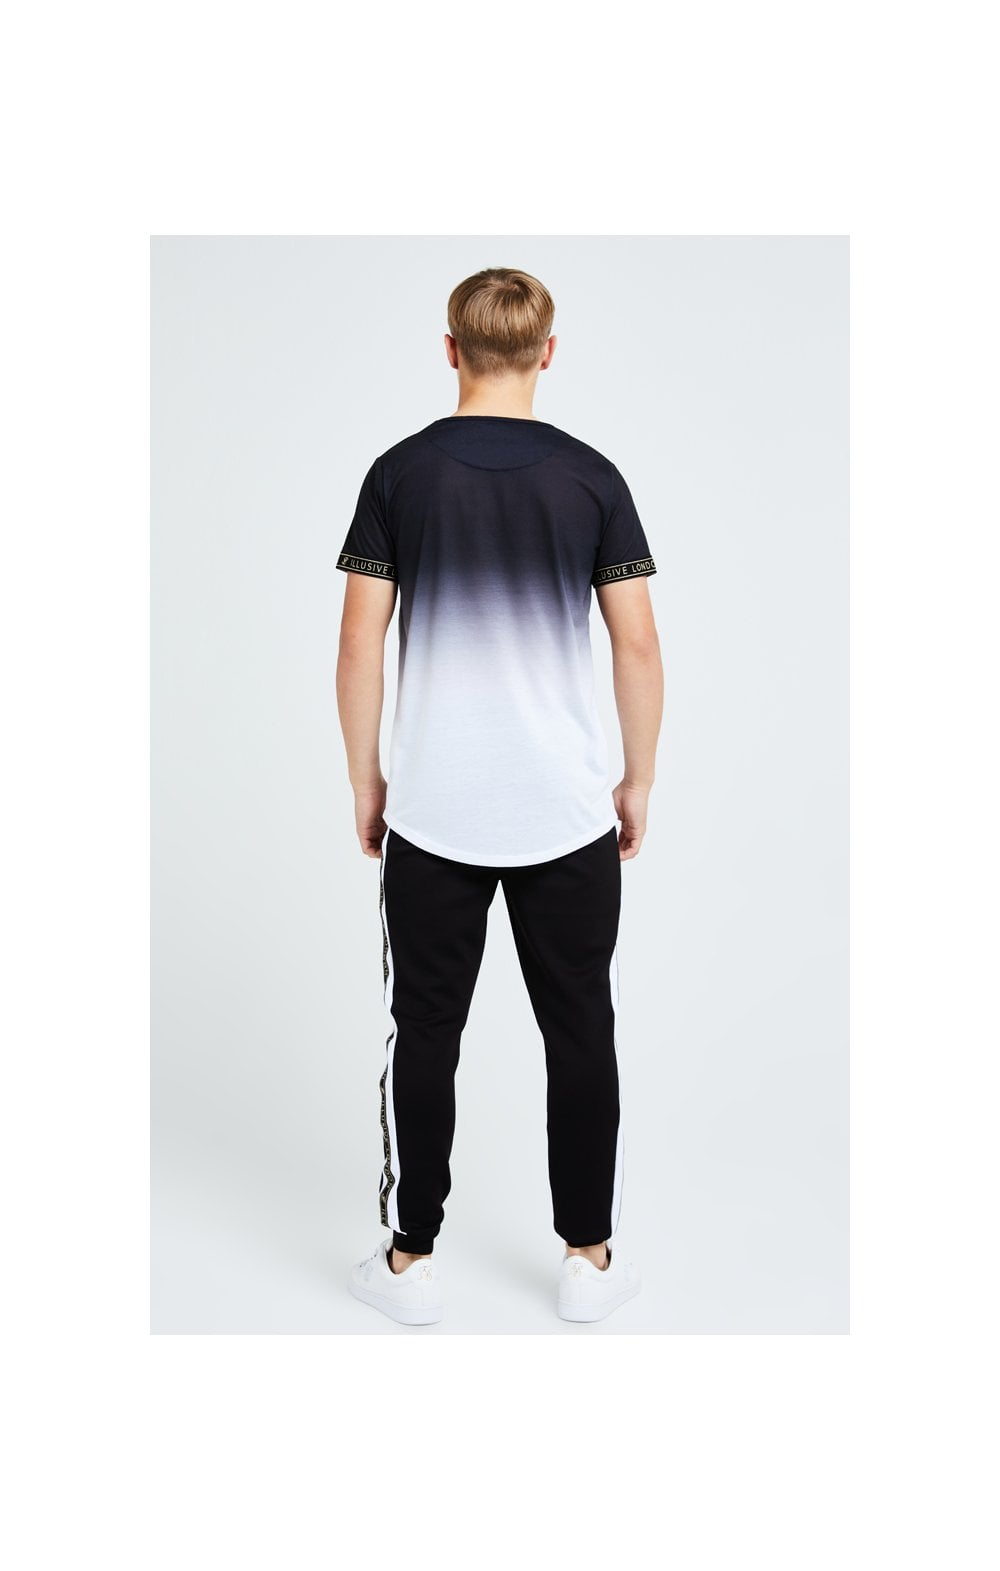 Illusive London Diverge Fade Tech Tee - Black Gold & White (4)